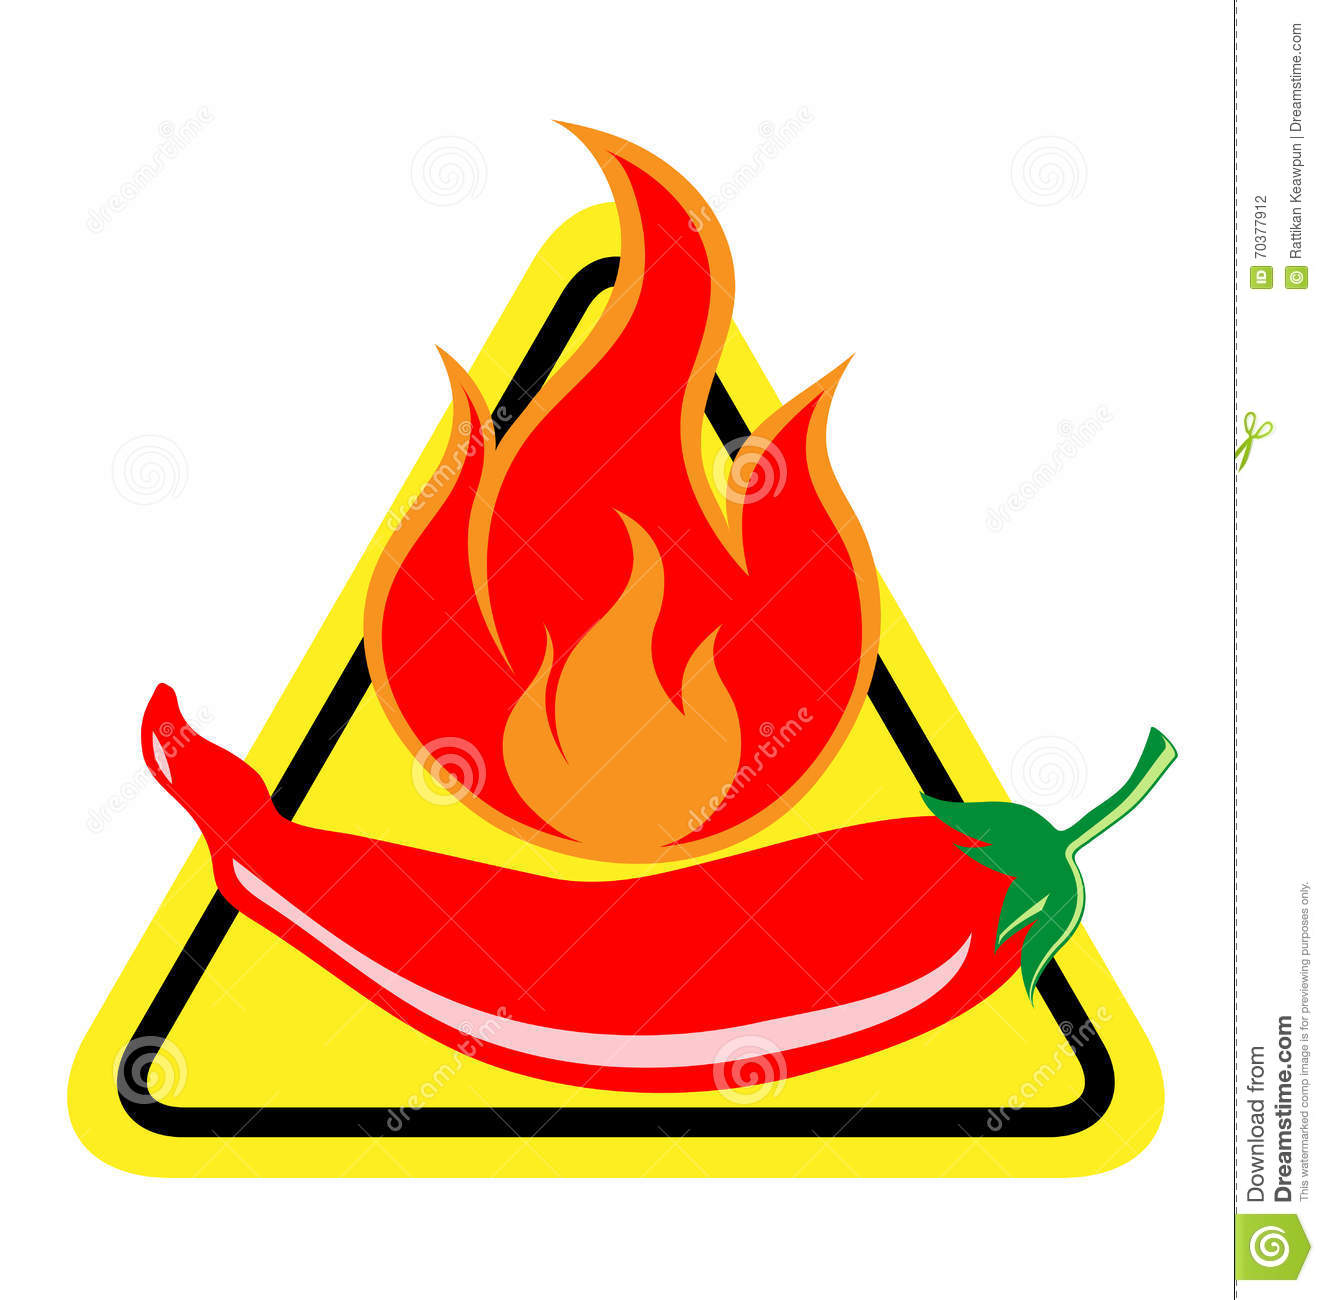 Spicy Chili Pepper Warning Sign Stock Vector - Image: 70377912